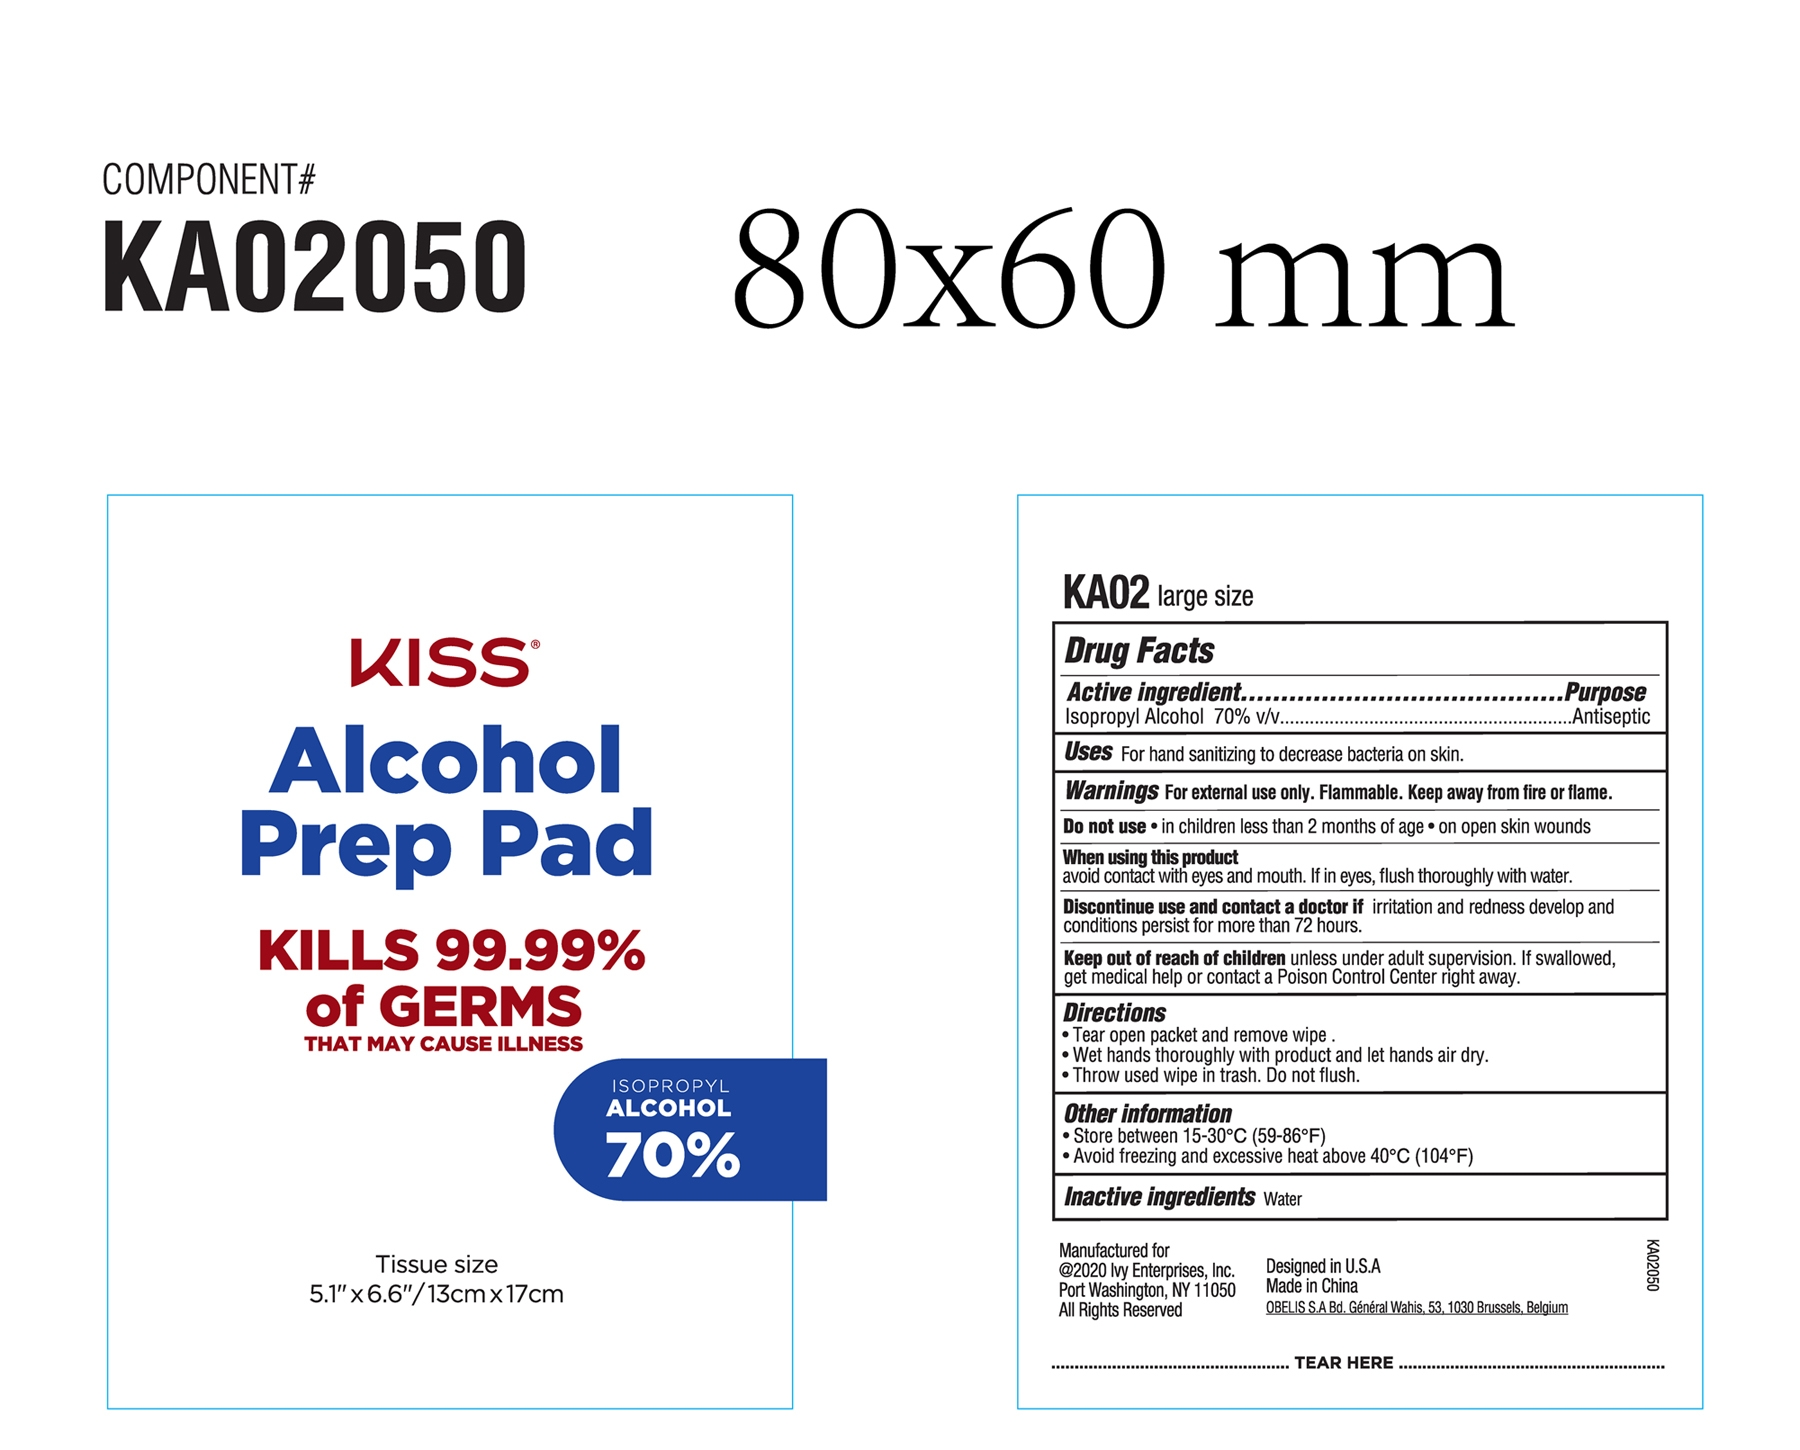 Kiss Alcohol Prep Pad KA02